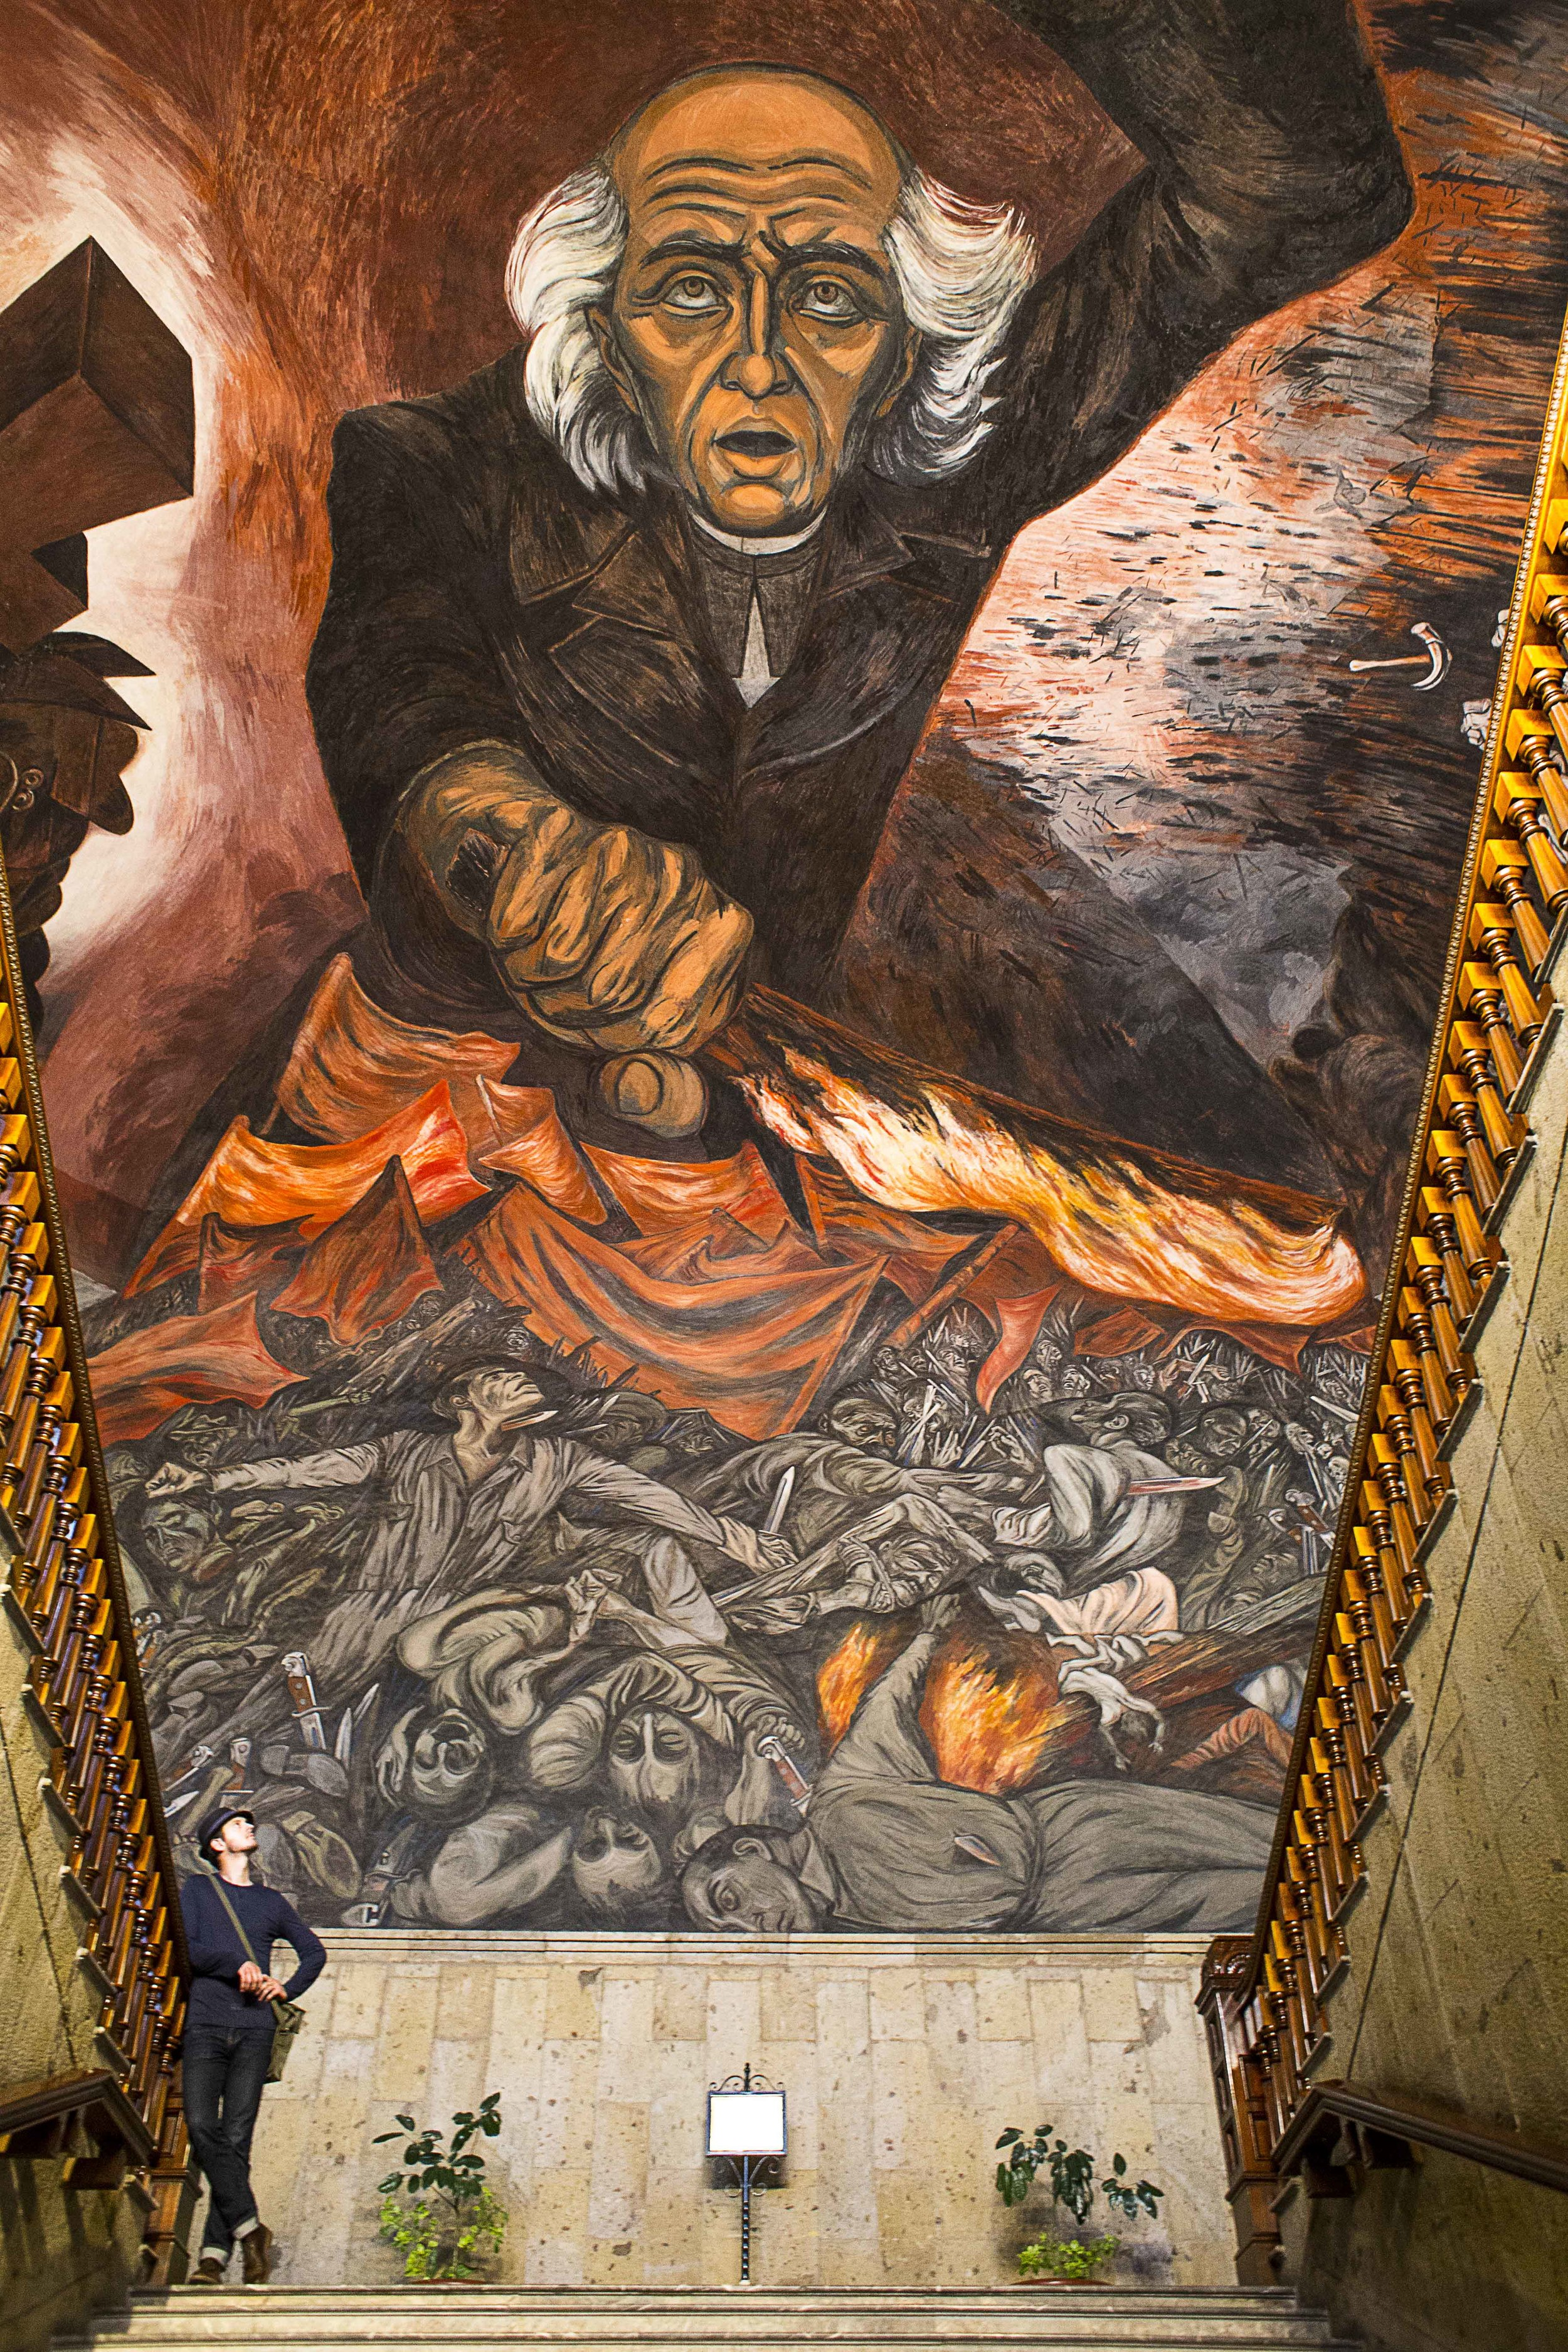 Day 65 - Guadalajara, Jalisco, Mexico   A mural by famed artist Jose Clemente Orozco showing Miguel Idalgo, the father of the Mexican Independence, brandishing a fiery torch at shadowy figures representing oppression and slavery. Painted in 1937 inside the Goernor's Palace or  Palacio del Govierno,  at the main staircase.